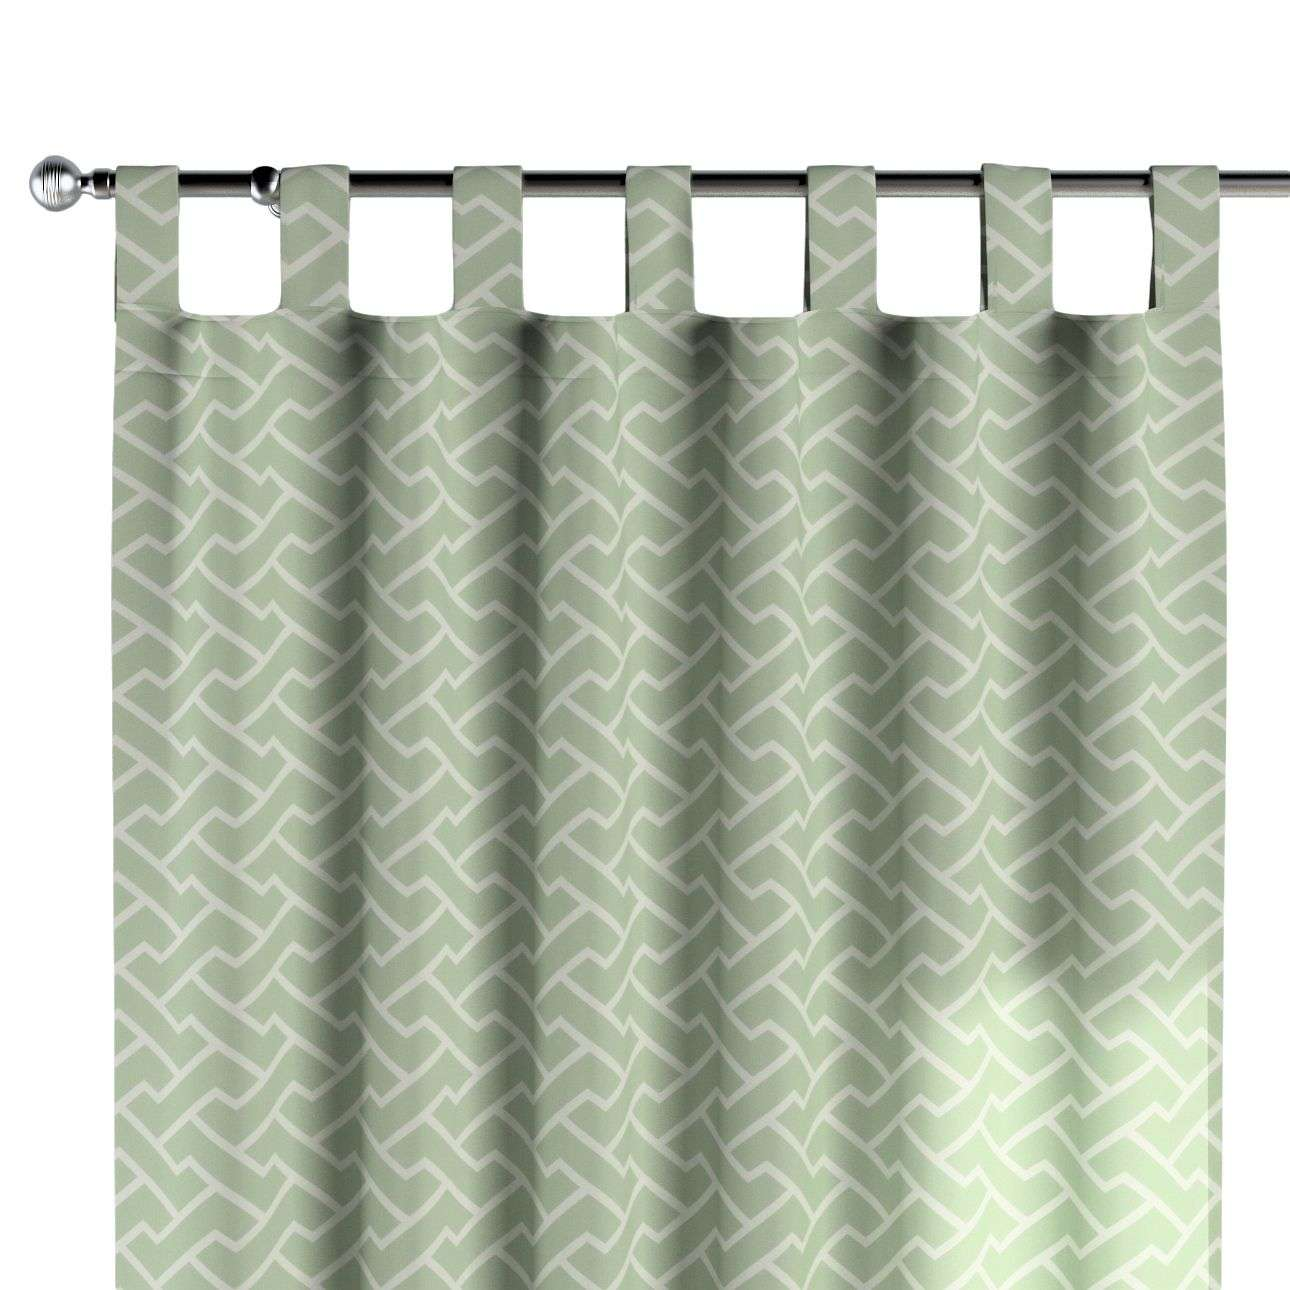 Tab top curtains 130 x 260 cm (51 x 102 inch) in collection Comics/Geometrical, fabric: 141-63